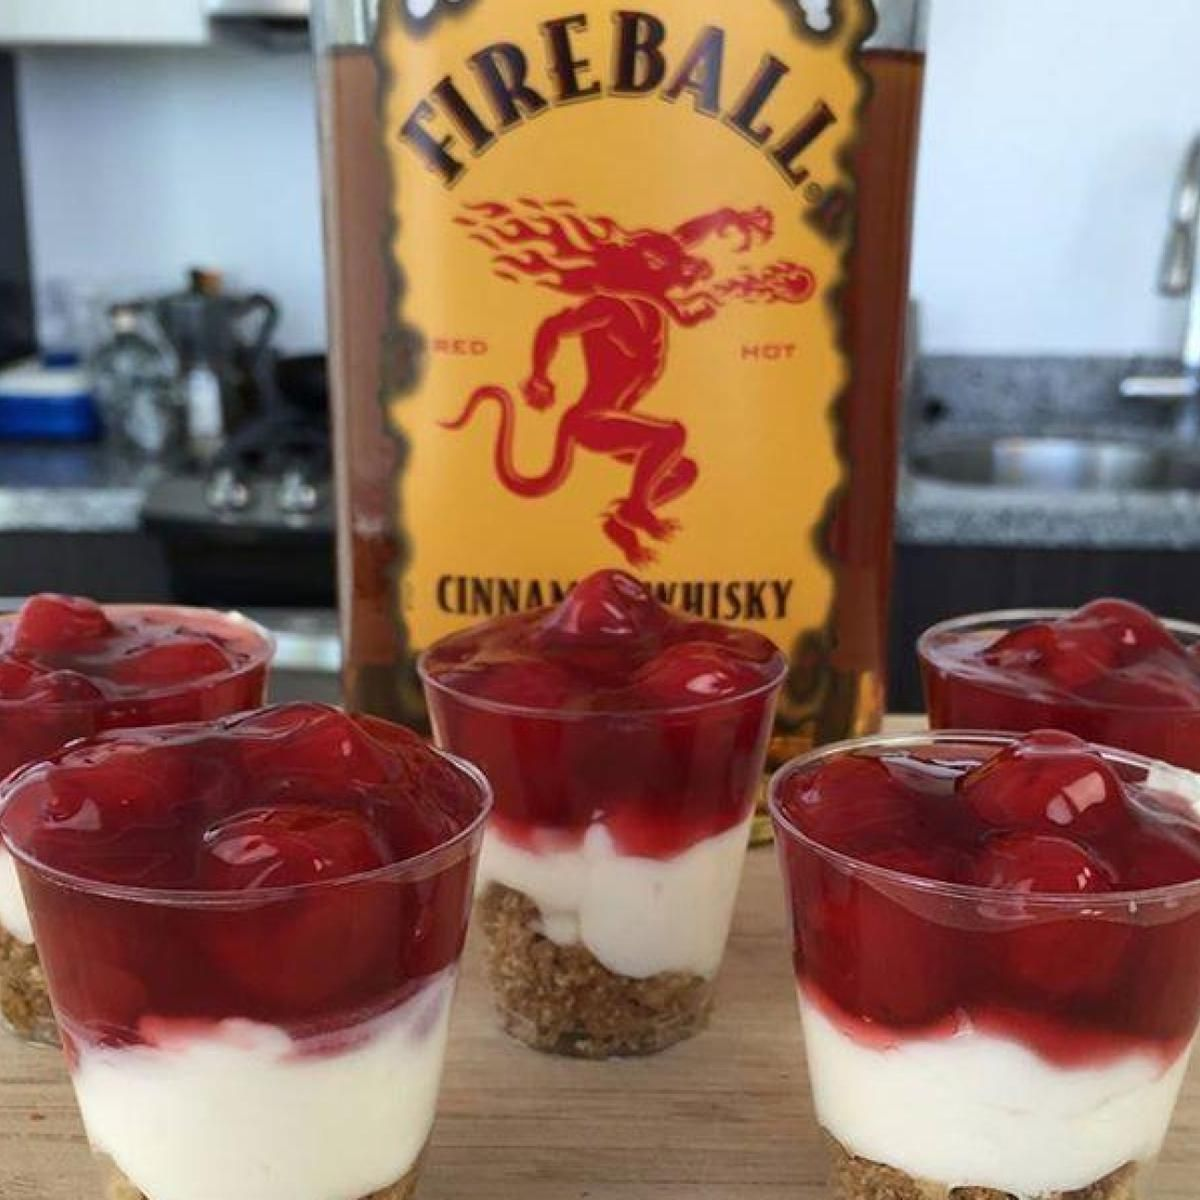 Campbell family fireball whiskey shots cheesecake recipe whiskey campbell family fireball whiskey shots cheesecake recipe whiskey shots fireball whiskey and cheesecakes forumfinder Images